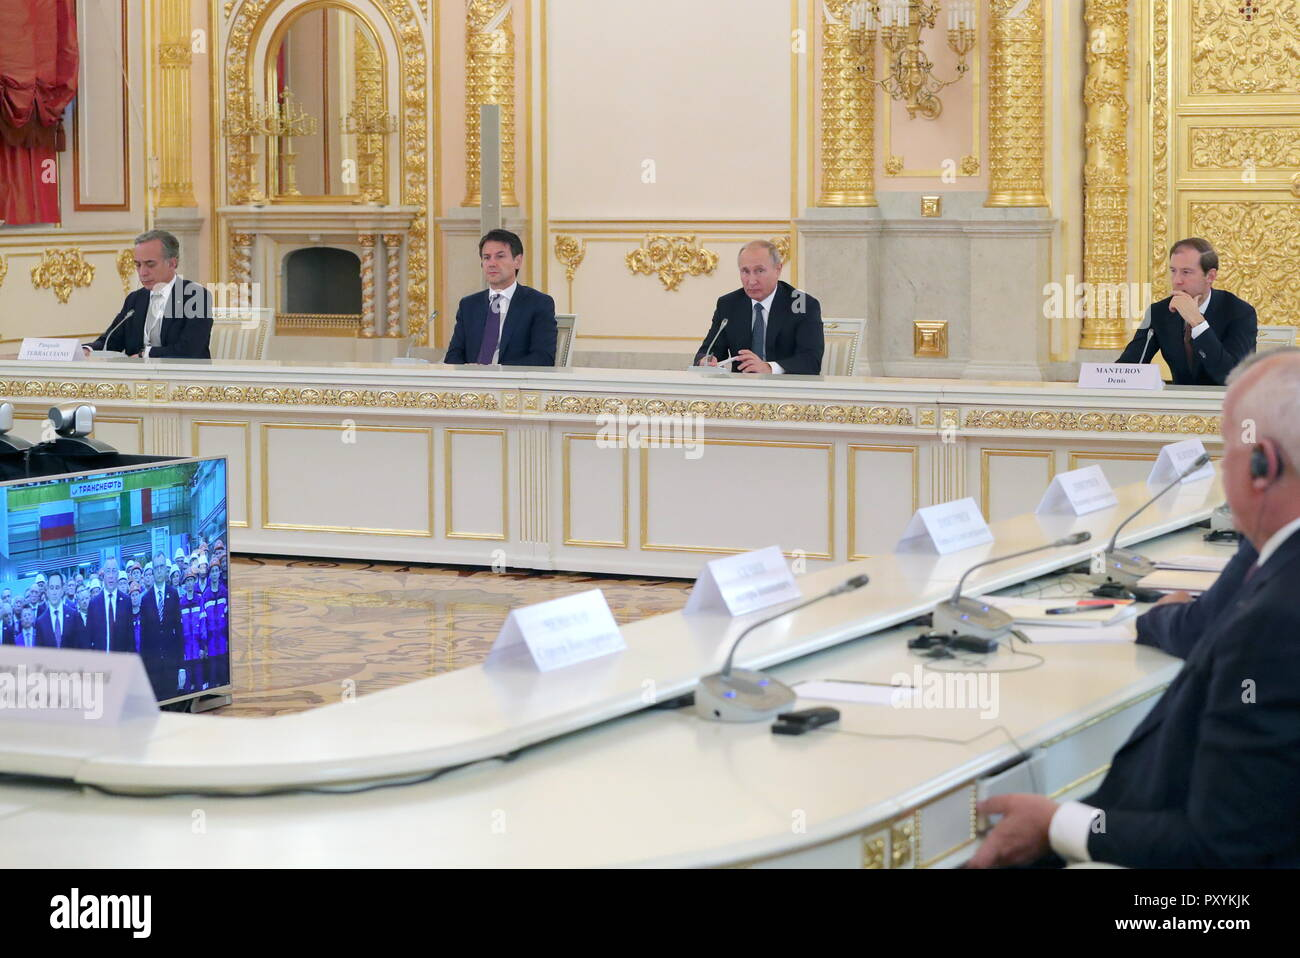 Moscow, Russia. 24th Oct, 2018. MOSCOW, RUSSIA - OCTOBER 24, 2018: Italy's Ambassador to Russia Pasquale Terracciano, Prime Minister Giuseppe Conte, Russia's President Vladimir Putin, and Industry and Trade Minister Denis Manturov (L-R back) attend a video conference to launch a REM (Russian Electric Motors) plant as part of a meeting with Italian businessmen at the Moscow Kremlin. Mikhail Klimentyev/Russian Presidential Press and Information Office/TASS Credit: ITAR-TASS News Agency/Alamy Live News - Stock Image